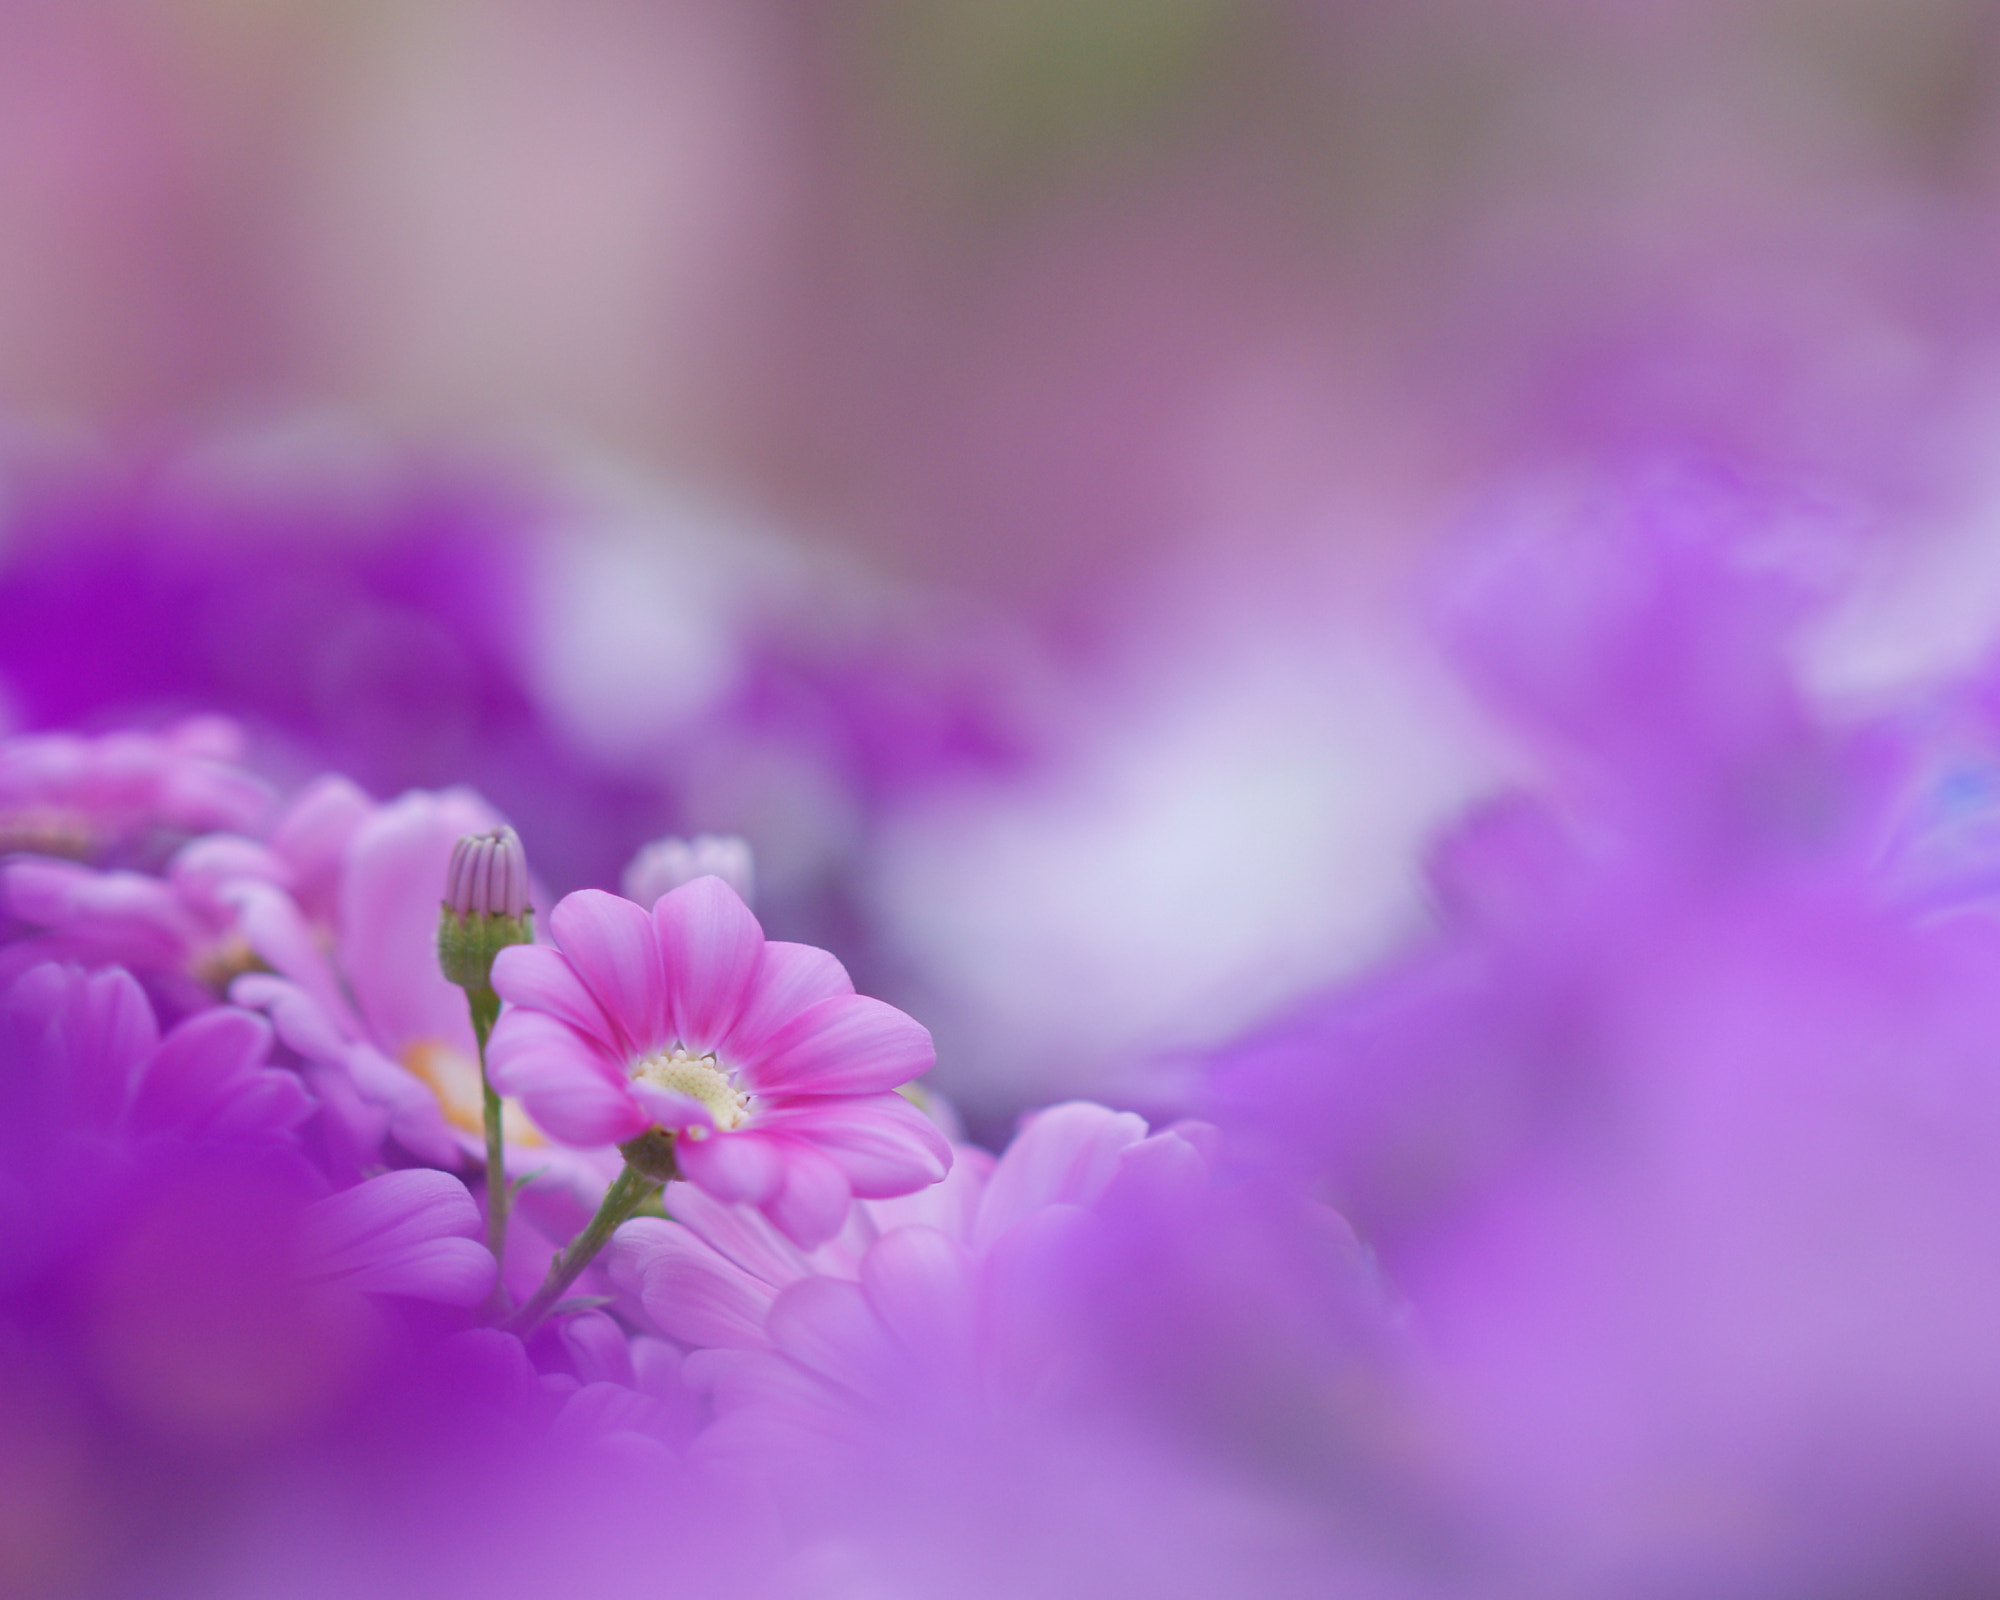 Photograph Lovely colers by Noriko Tabuchi on 500px